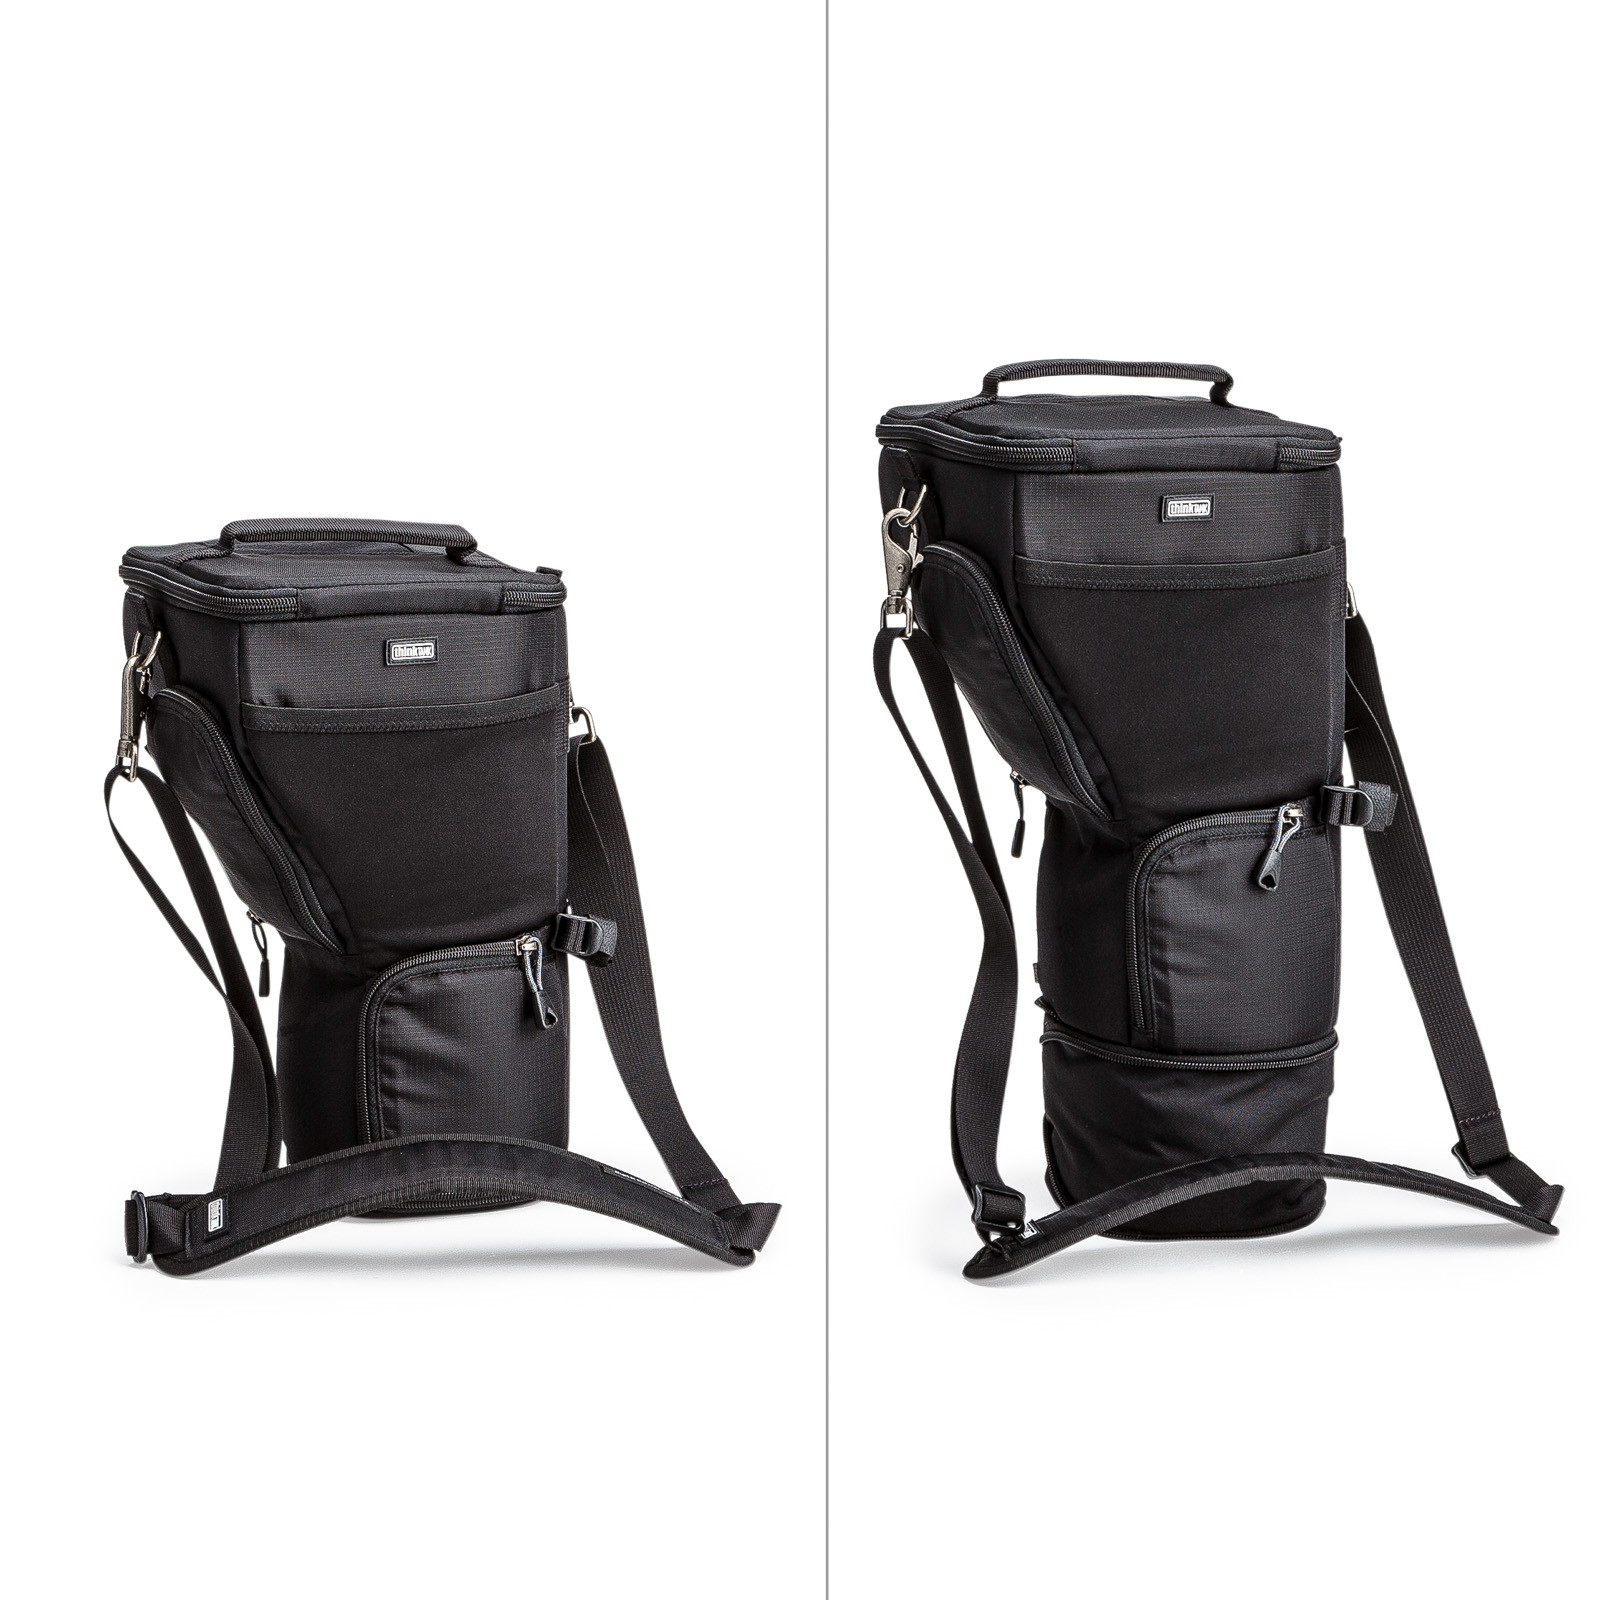 ThinkTankPhoto Digital Holster 50 V2.0